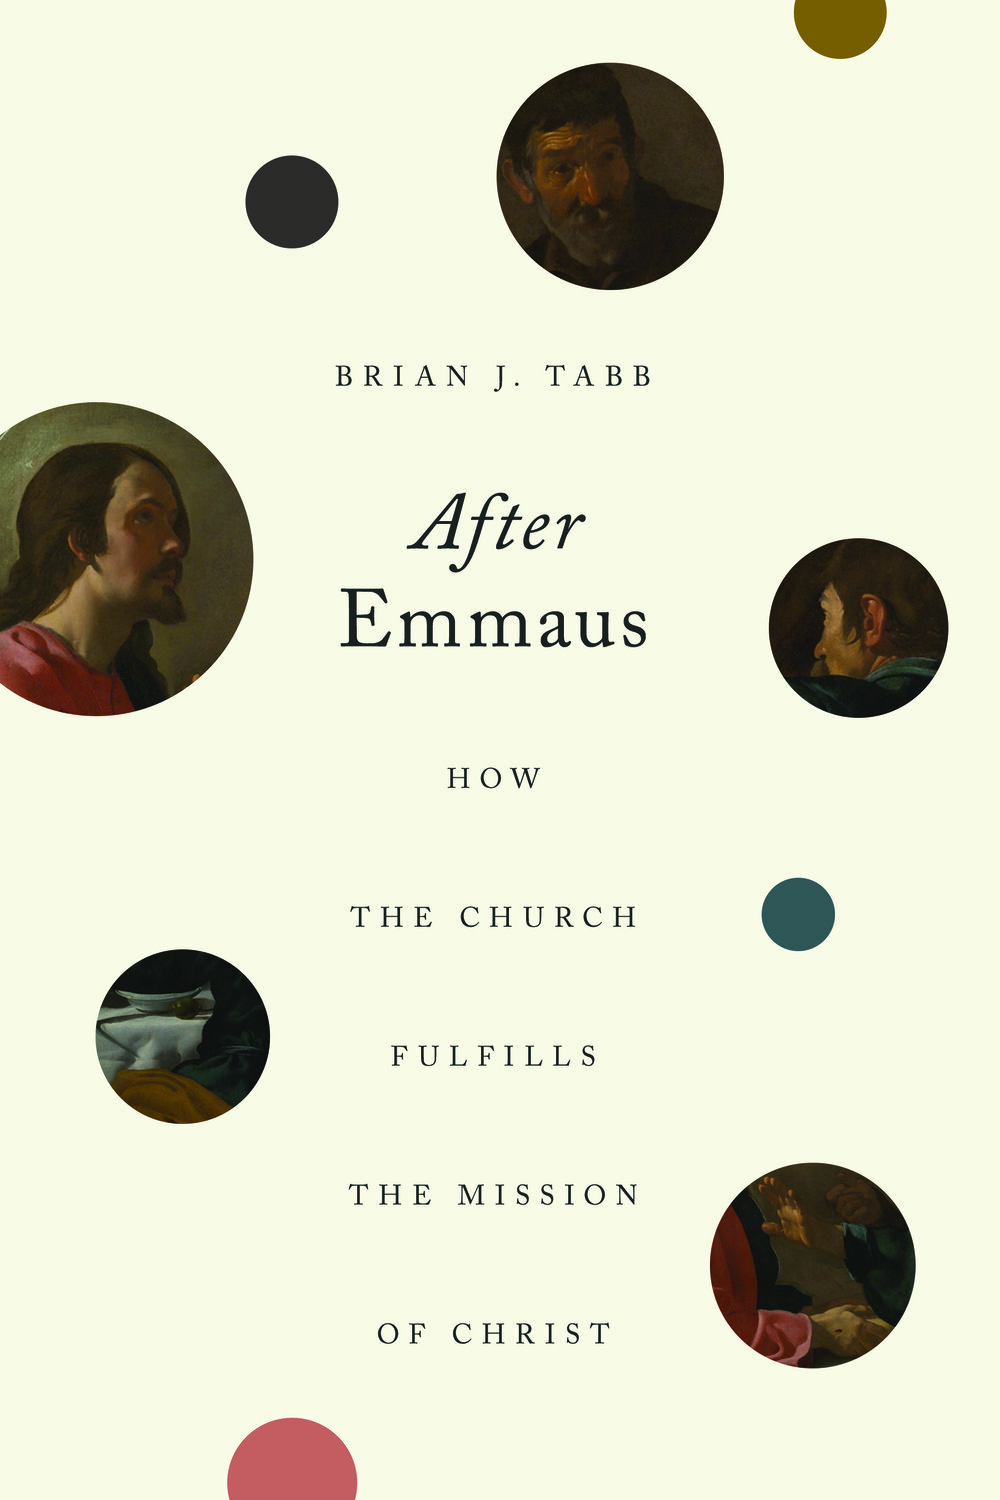 After Emmaus: How the Church Fulfills the Mission of Christ